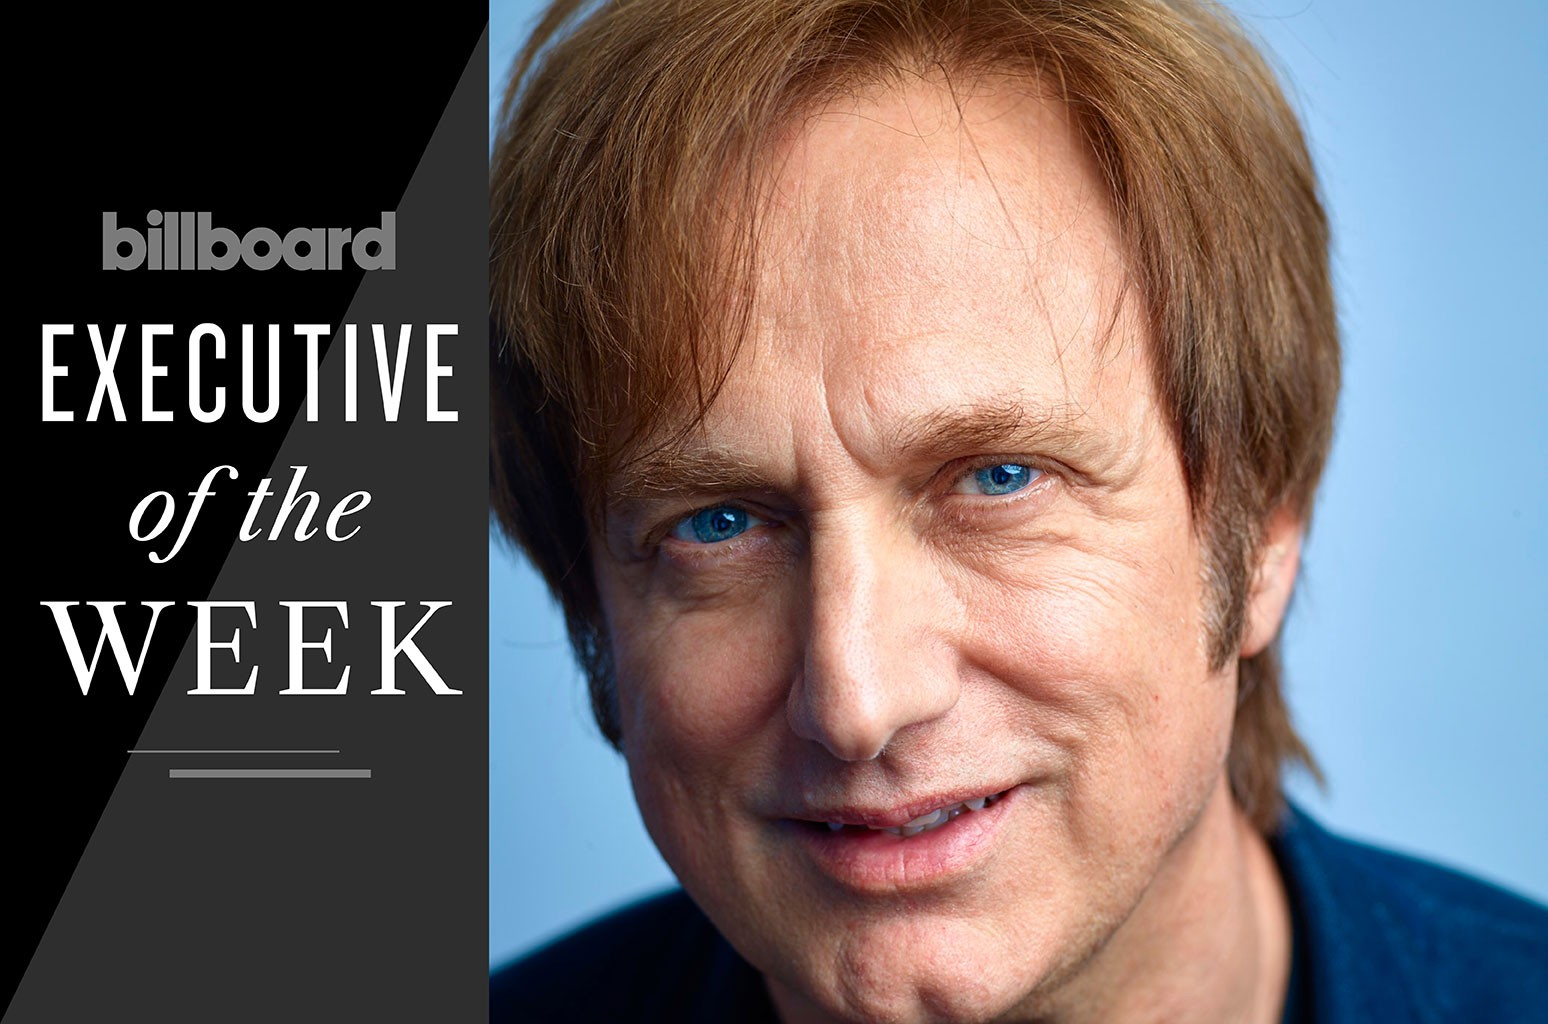 Executive of the Week: Record Store Day Co-Founder Michael Kurtz